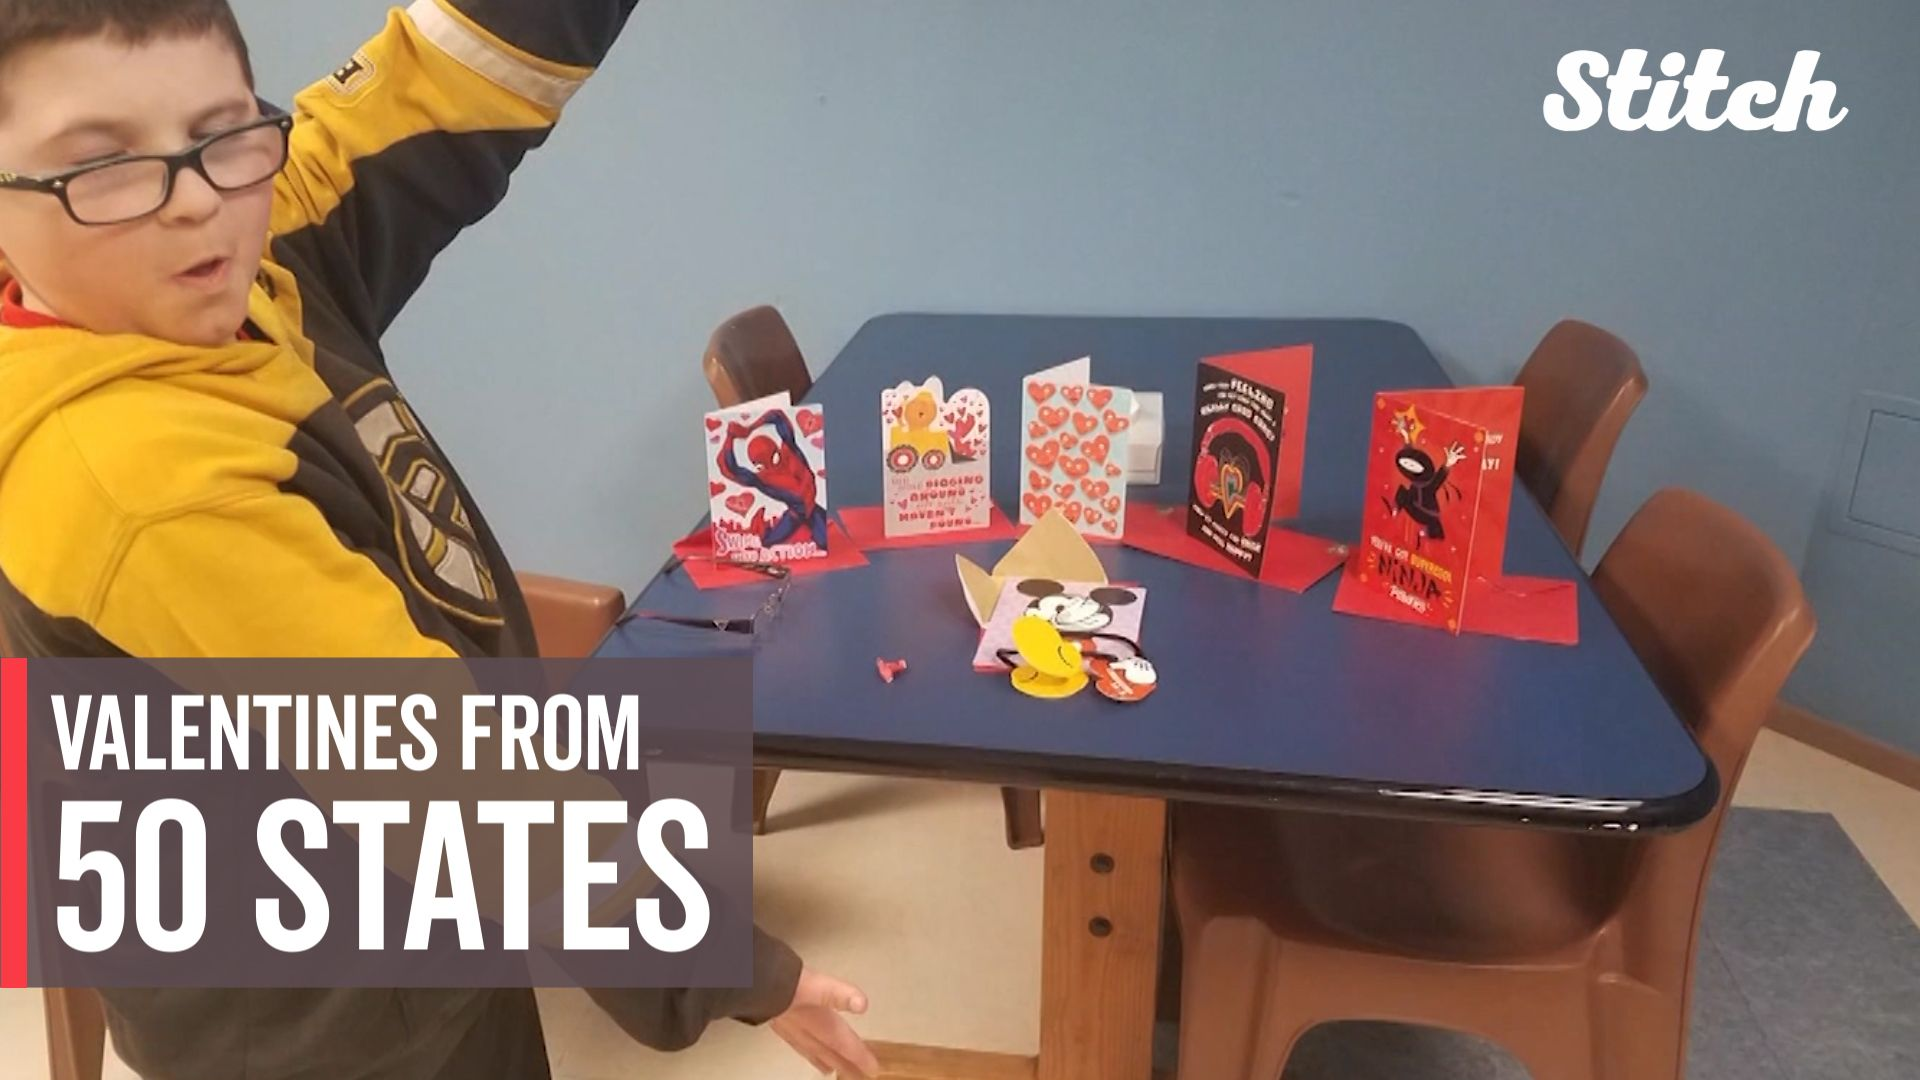 11-year-old boy with autism requests Valentine's Day cards from all on 50 states and their abbreviations, 50 states nicknames, 50 states addicting games, 50 states numbers, 50 states maps, 50 states places, 50 states colleges and universities, 50 states rivers, 50 states white pages, 50 states state, 50 states practice sheet, printable united states postal codes, 50 states numbered, 50 states dates, 50 states movies, 50 states year founded, 50 states quilt pattern, 50 states word bank, 50 states largest to smallest, 50 states coloring activity,